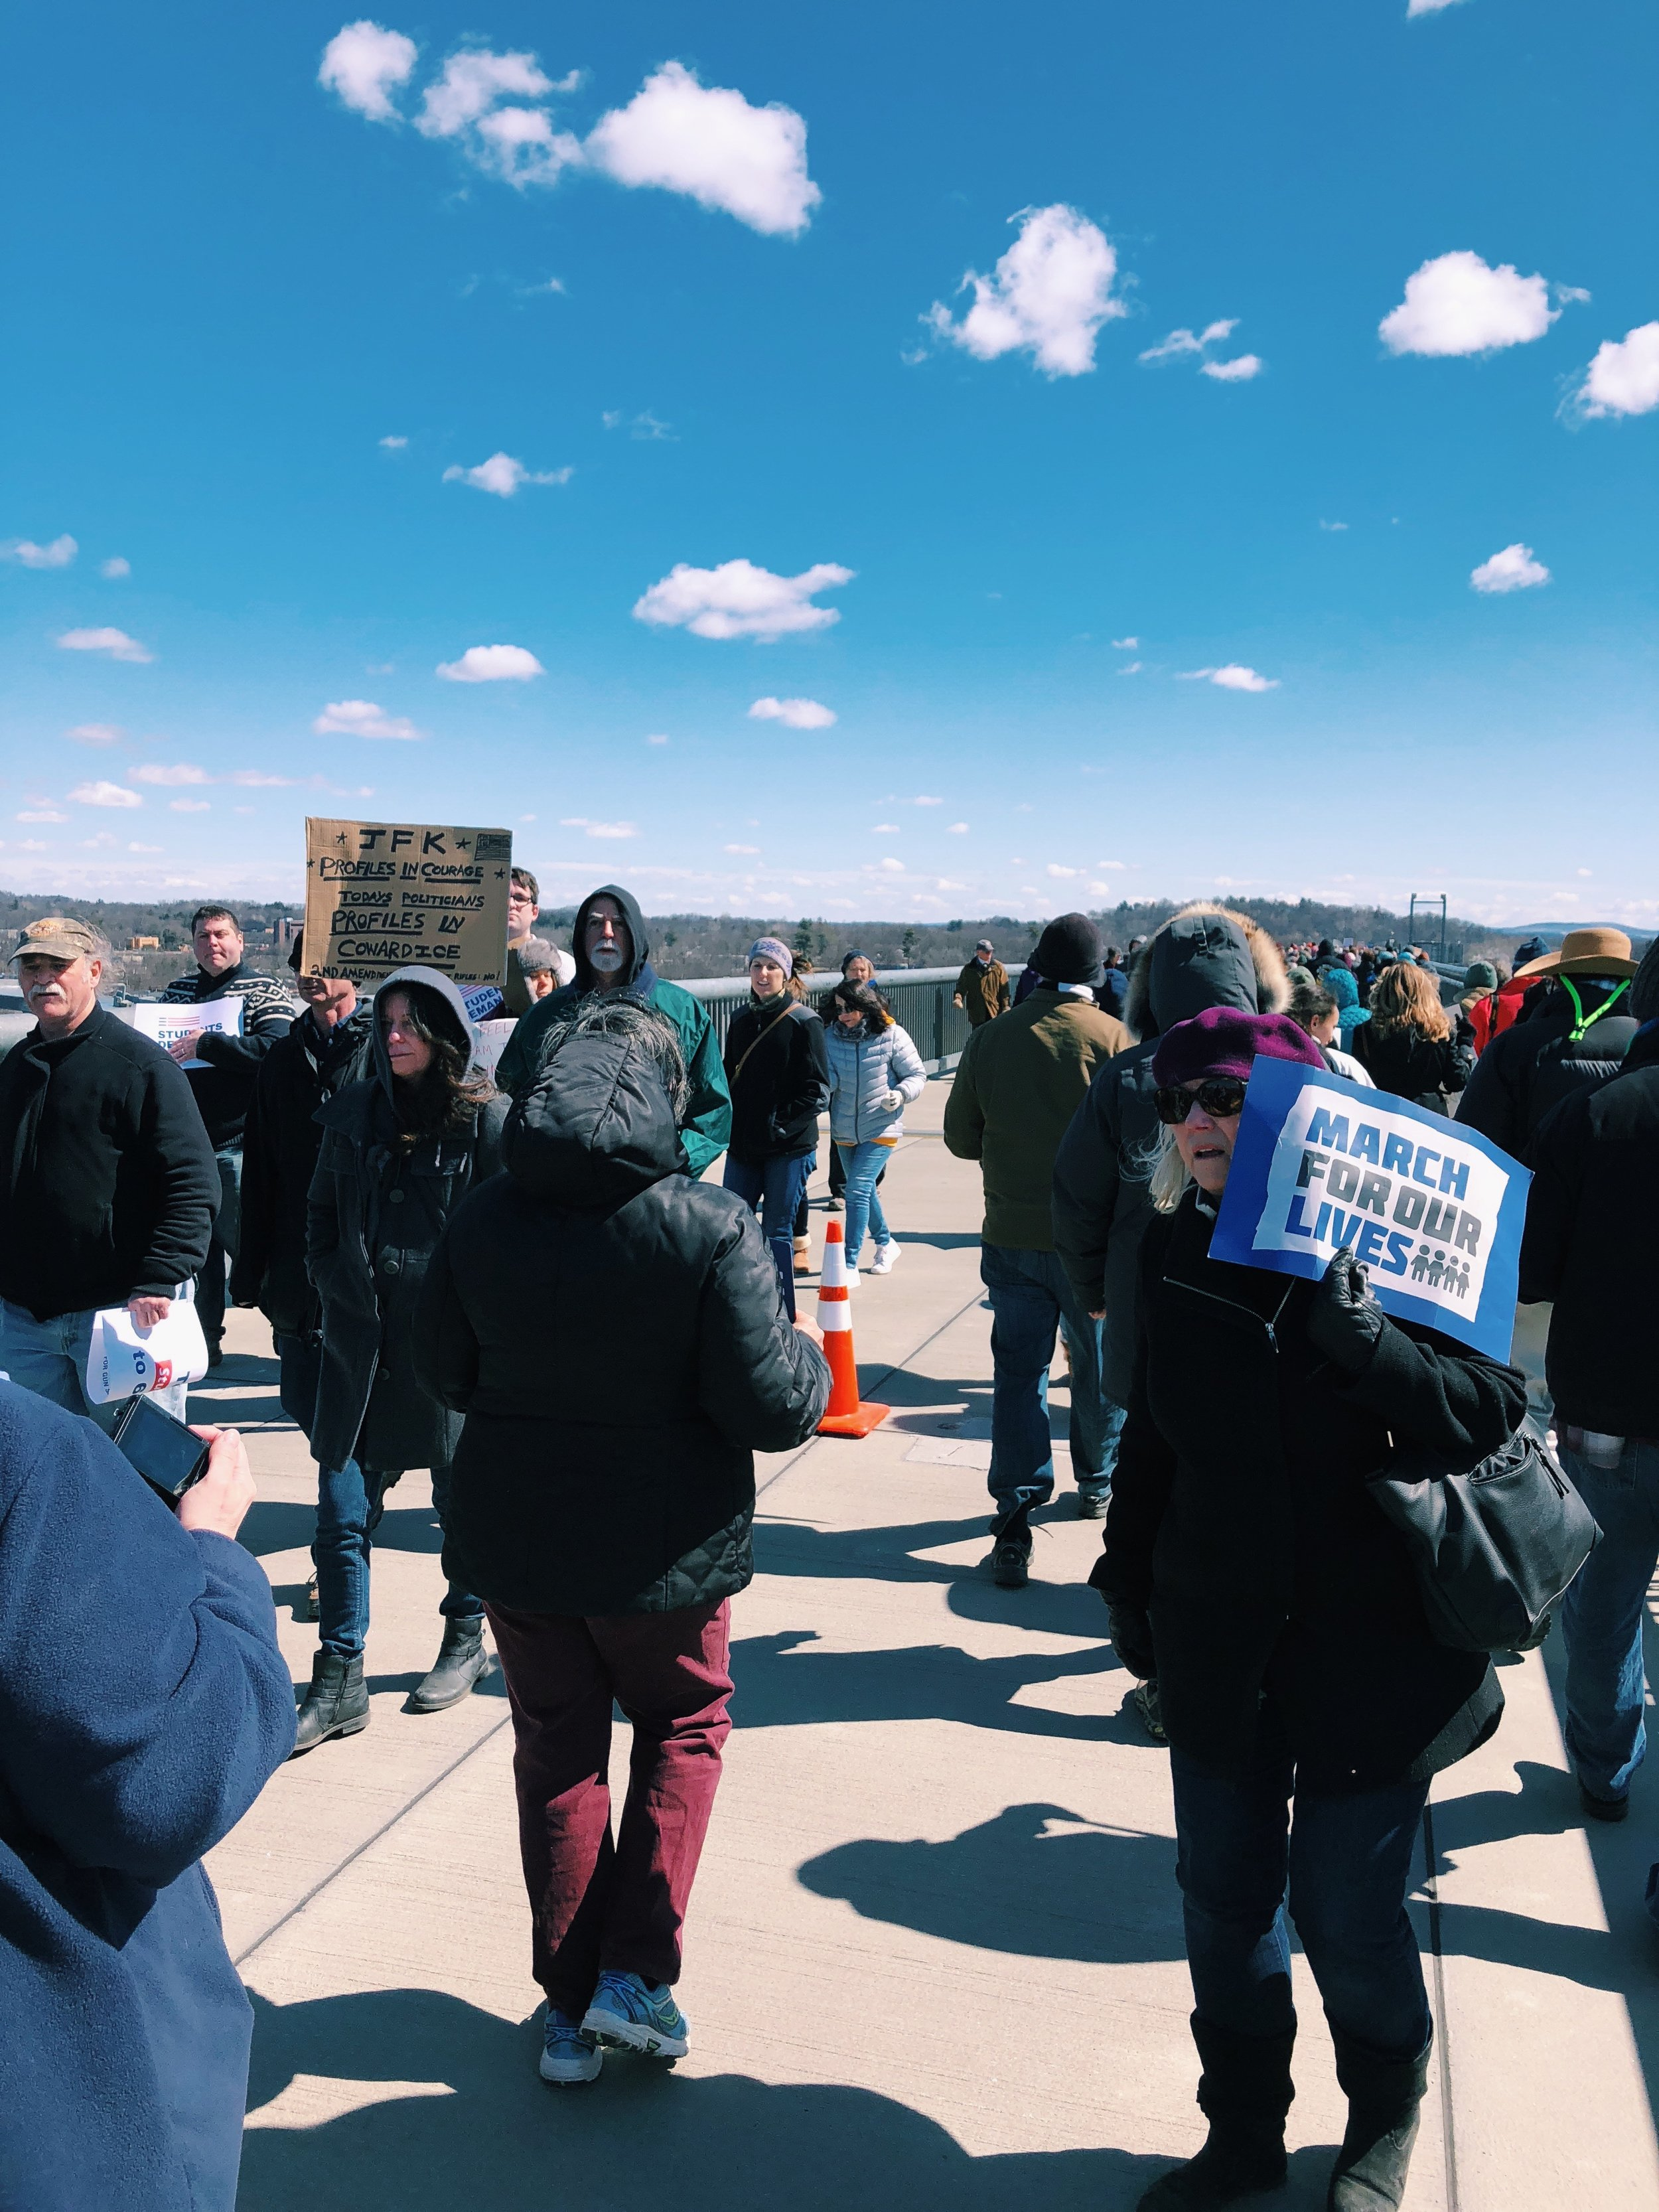 Over 7,000 attend March for Our Lives, Poughkeepsie. Photo Courtesy of Madison Vettorino.